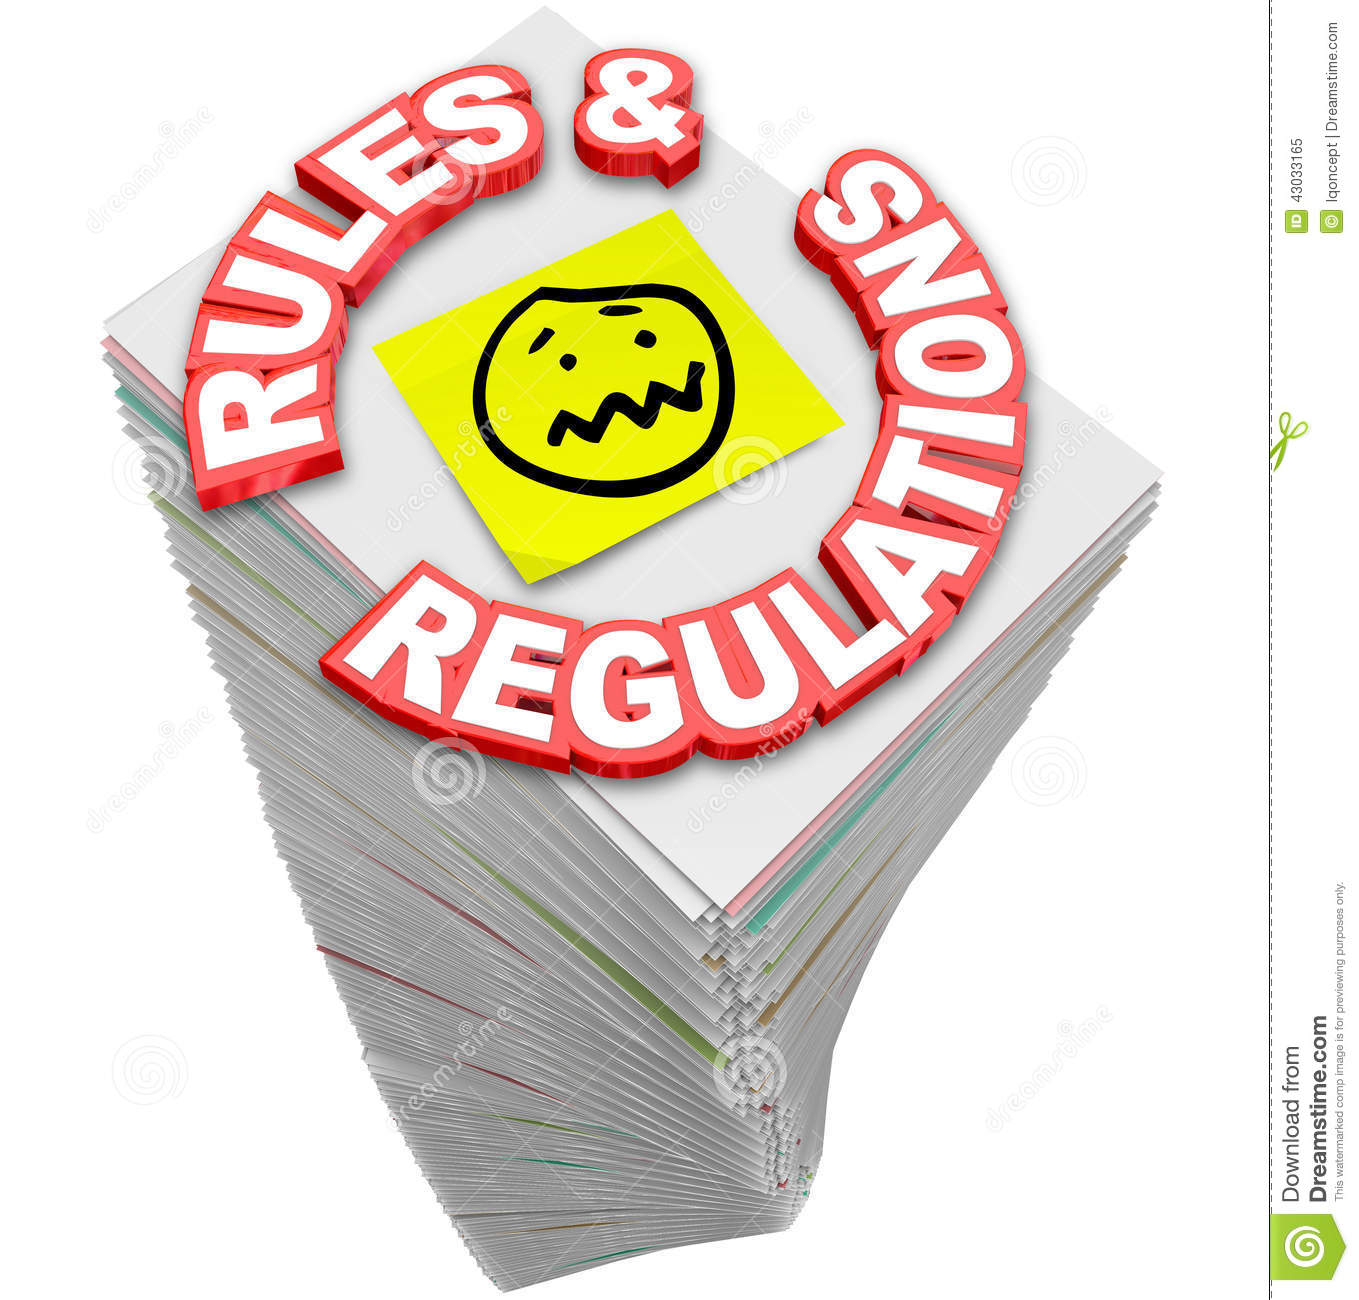 Rules and regulations clipart graphic library library Rules Regulations Paperwork | Clipart Panda - Free Clipart ... graphic library library